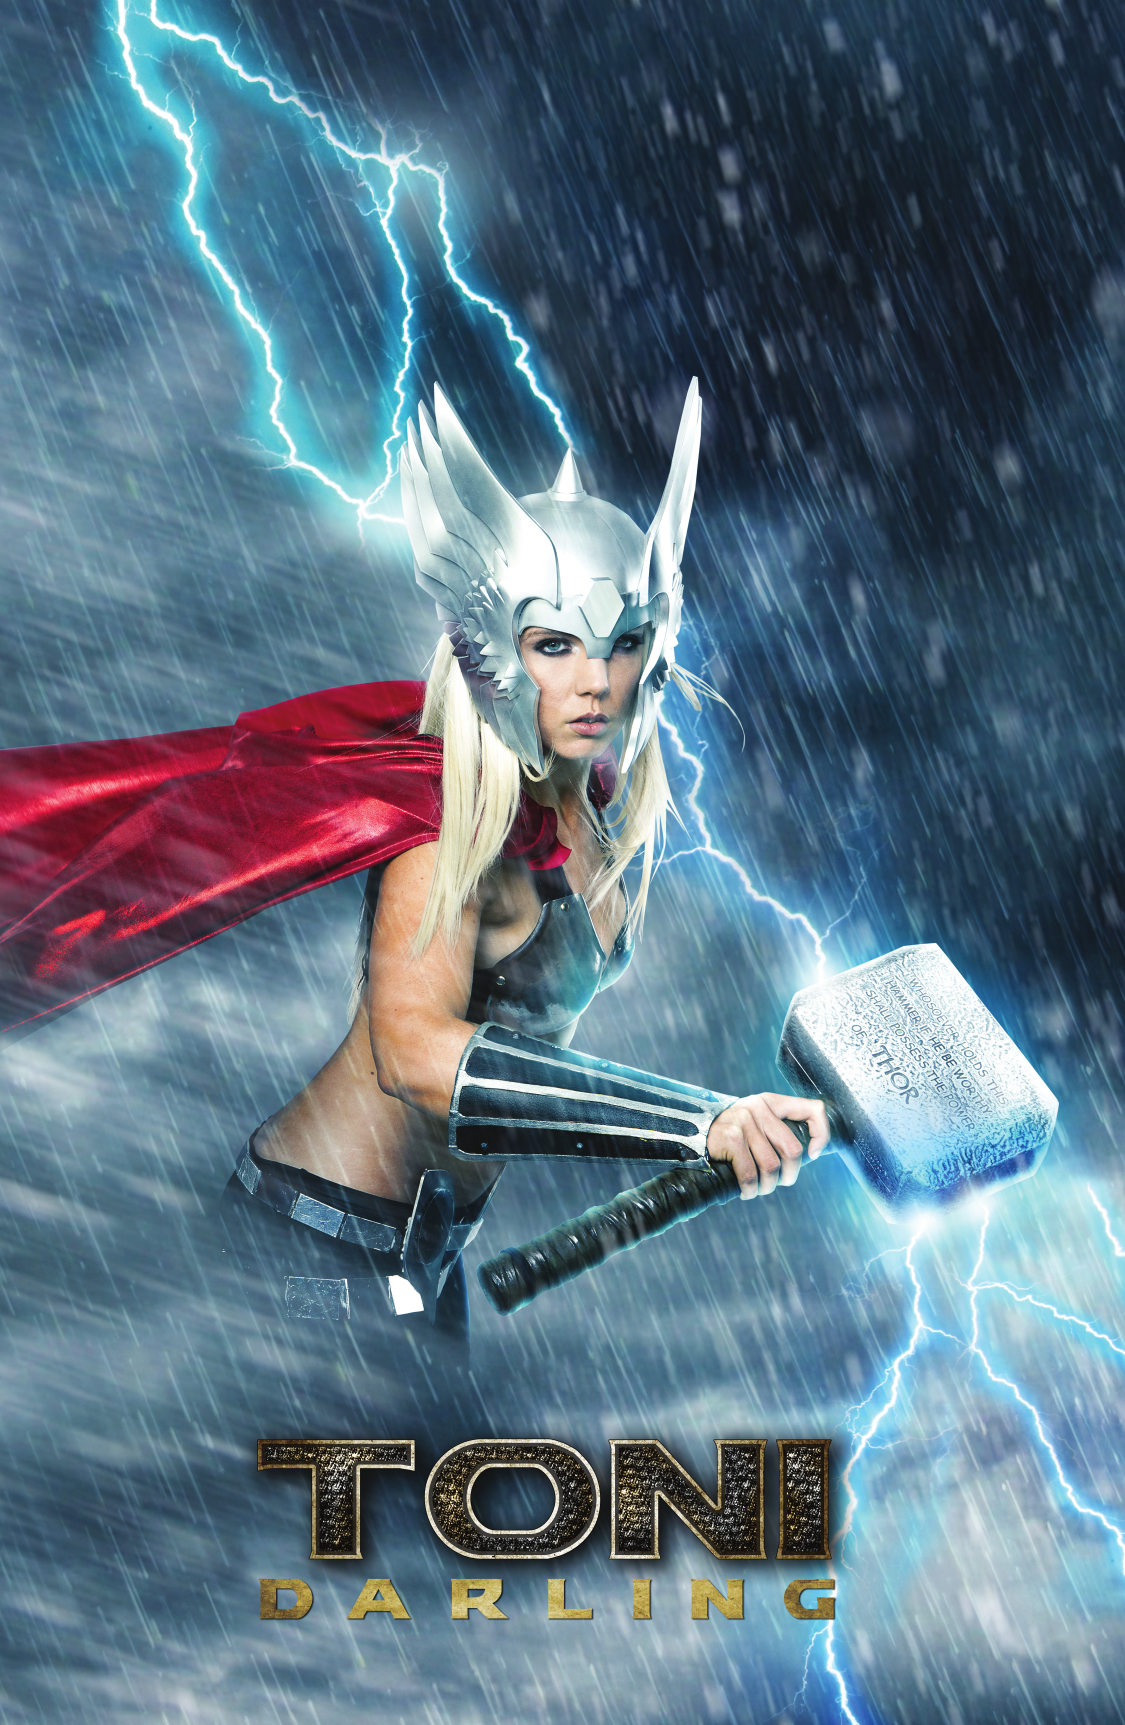 Thor wallpapers toni darling online store powered by - Thor wallpaper ...